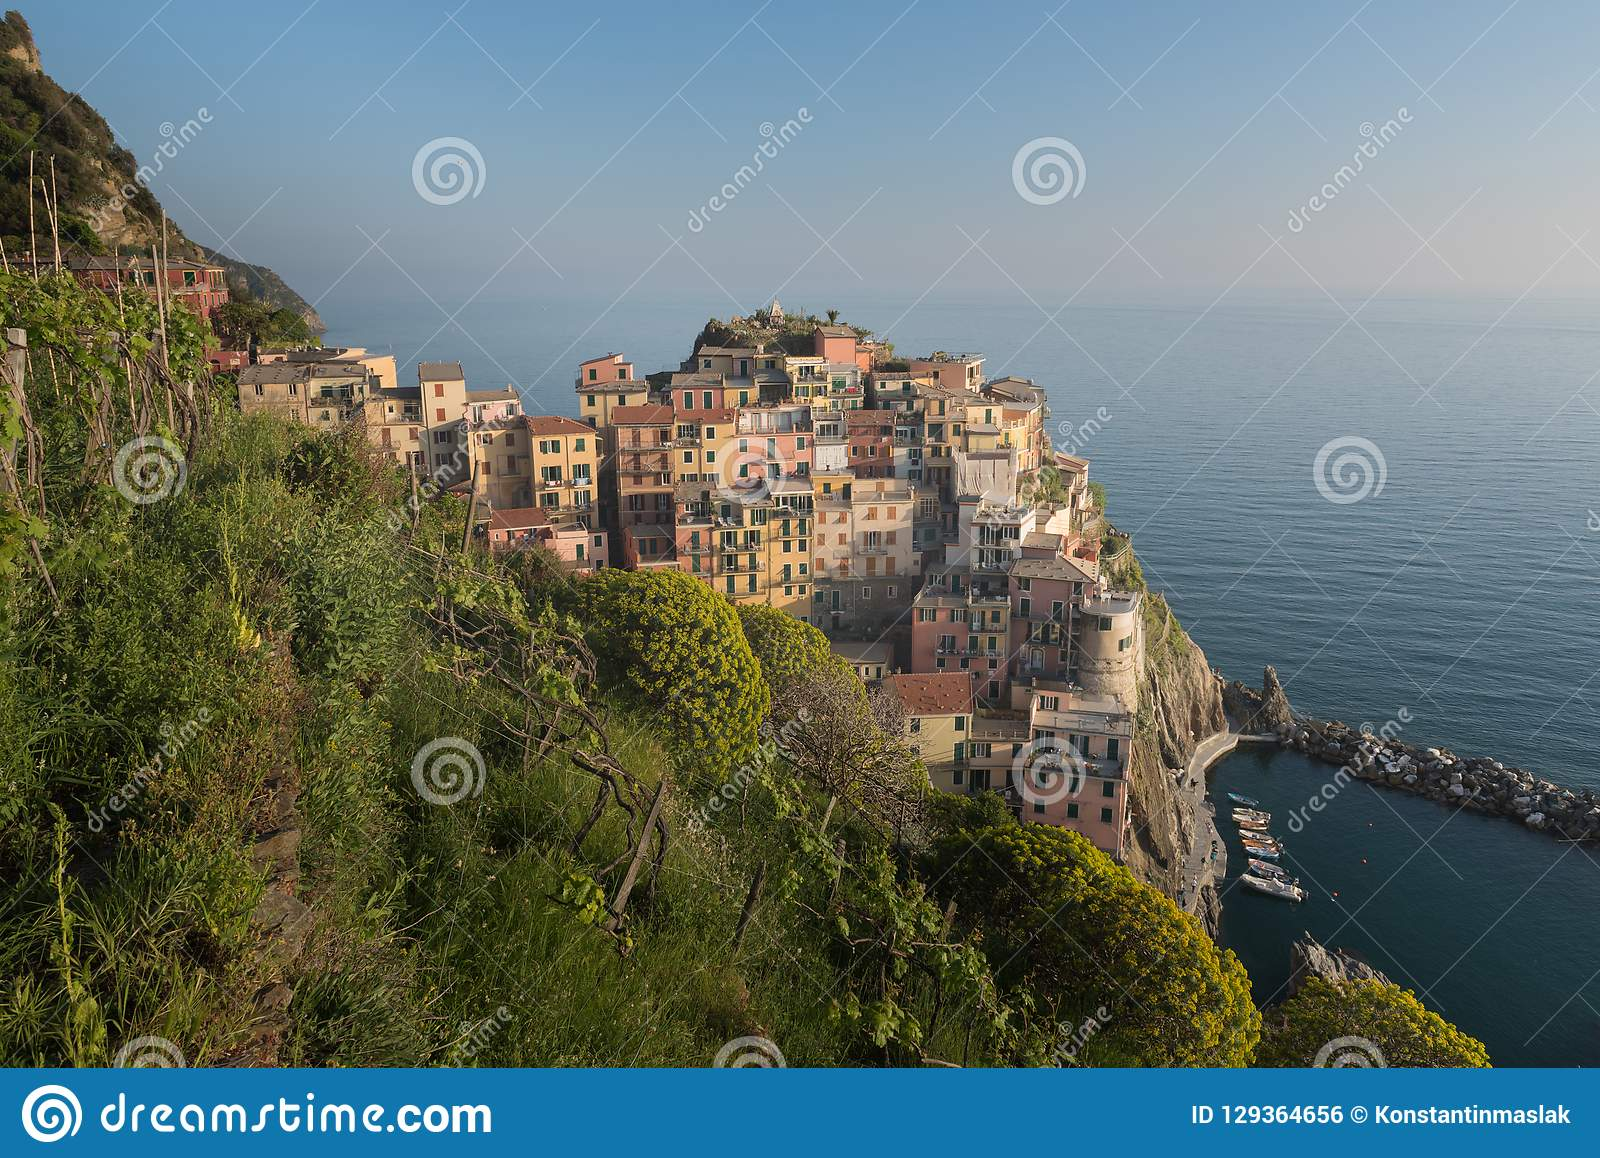 Aerial view of Vernazza fishing village at sunset, seascape in Five lands, Cinque Terre National Park